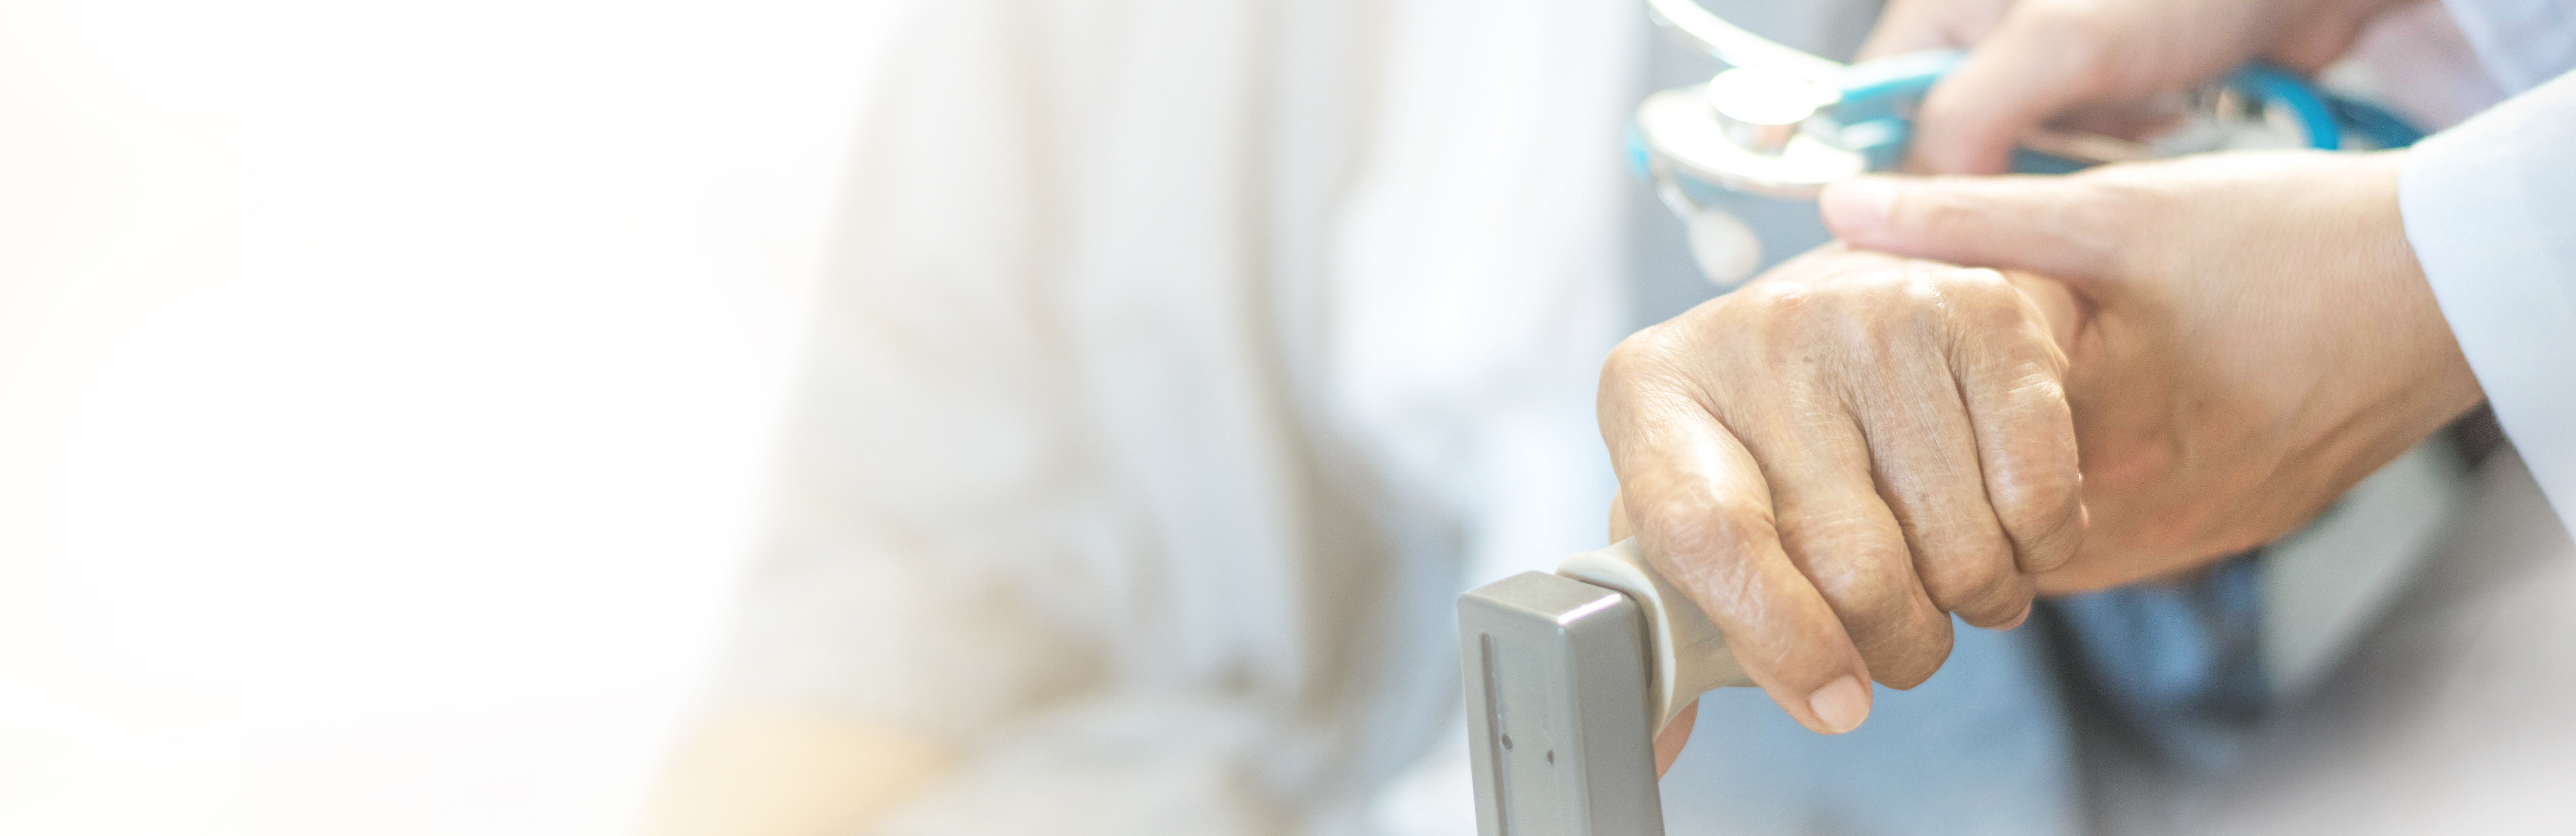 a female doctor is holding the hand of an elderly patient